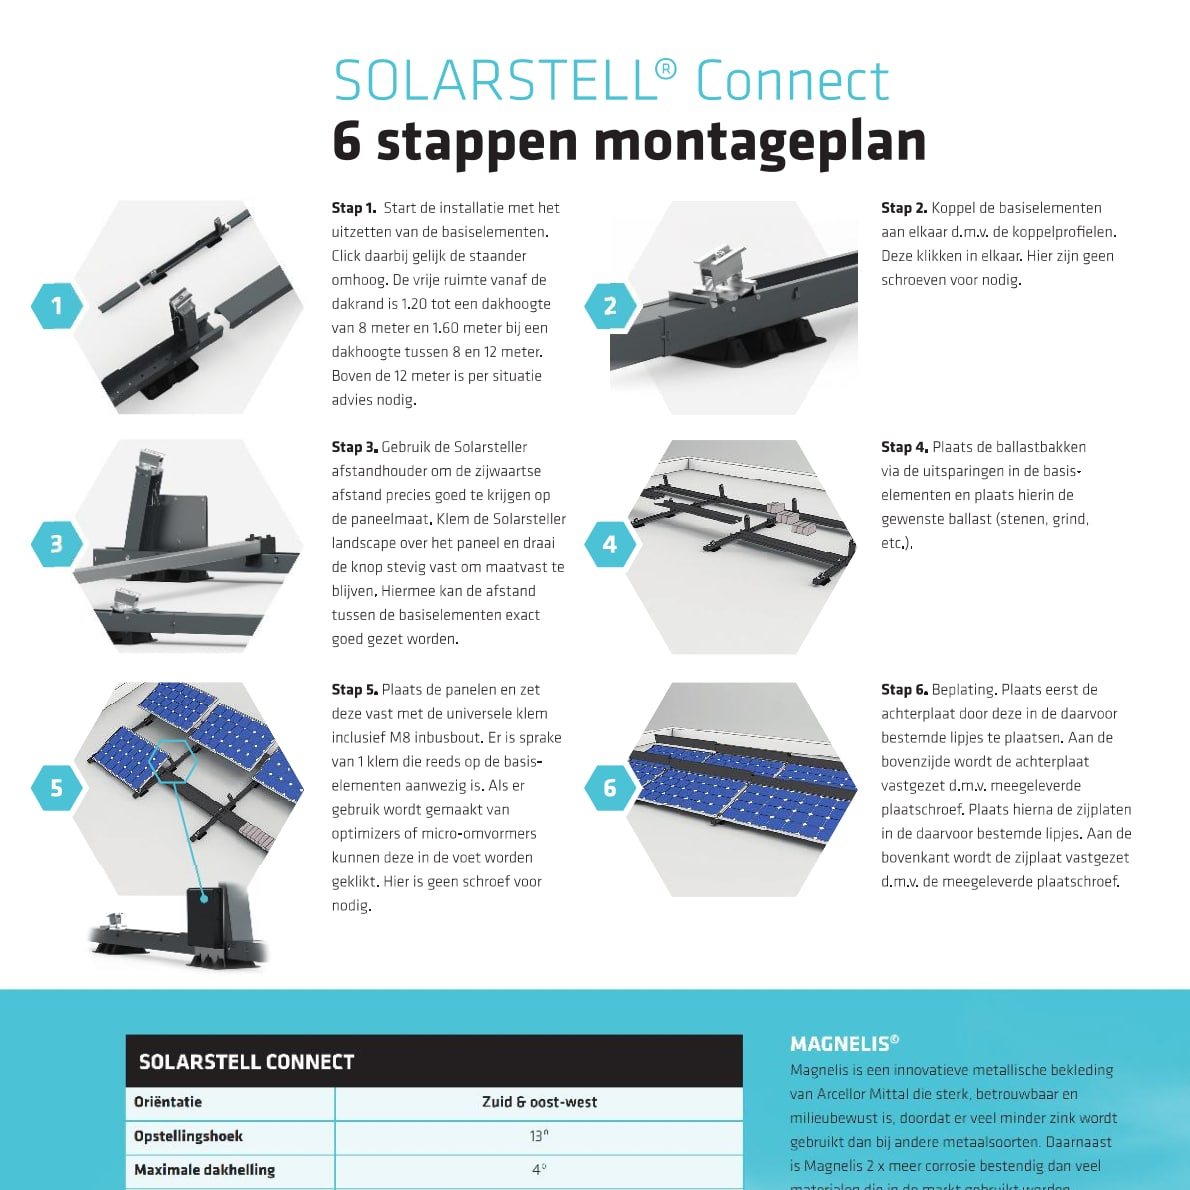 solarstell connect 6 stappen montageplan